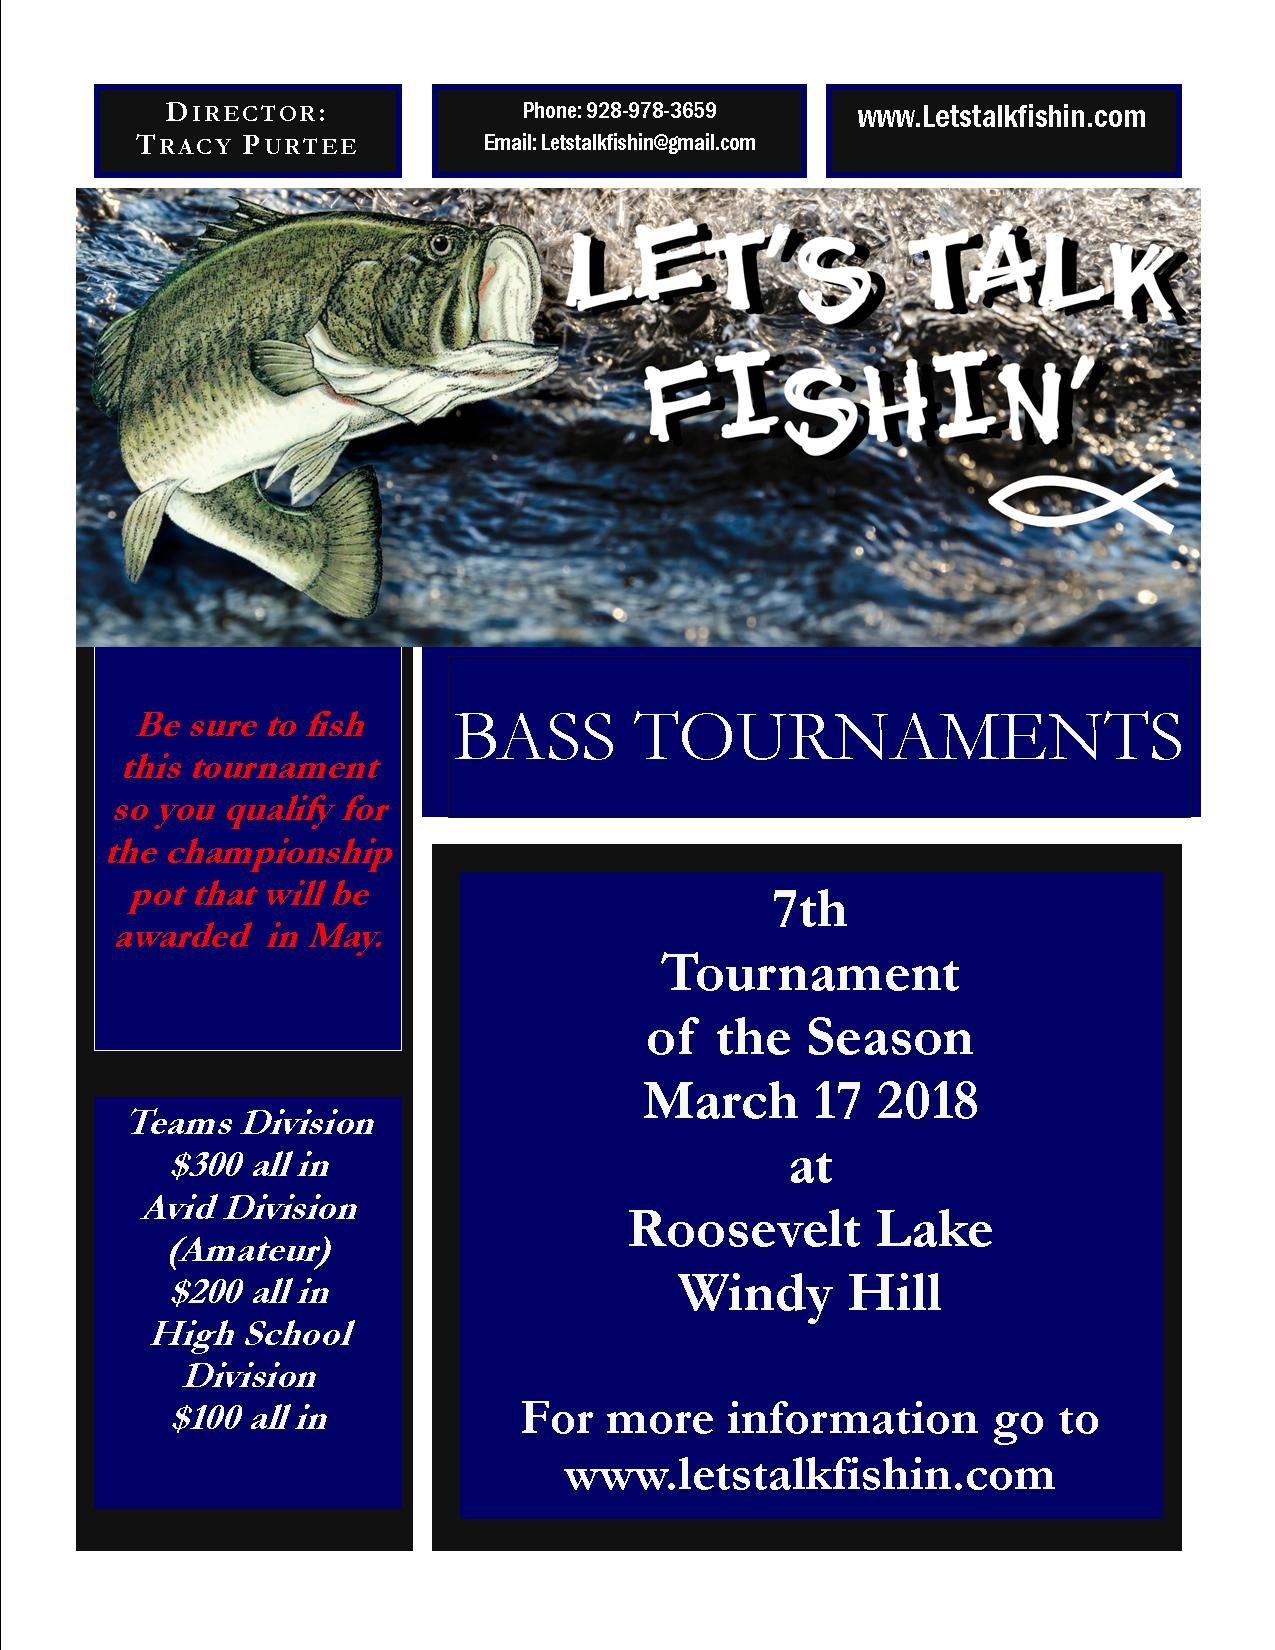 Click image for larger version  Name:7th Tournament.jpg Views:1778 Size:283.6 KB ID:96826